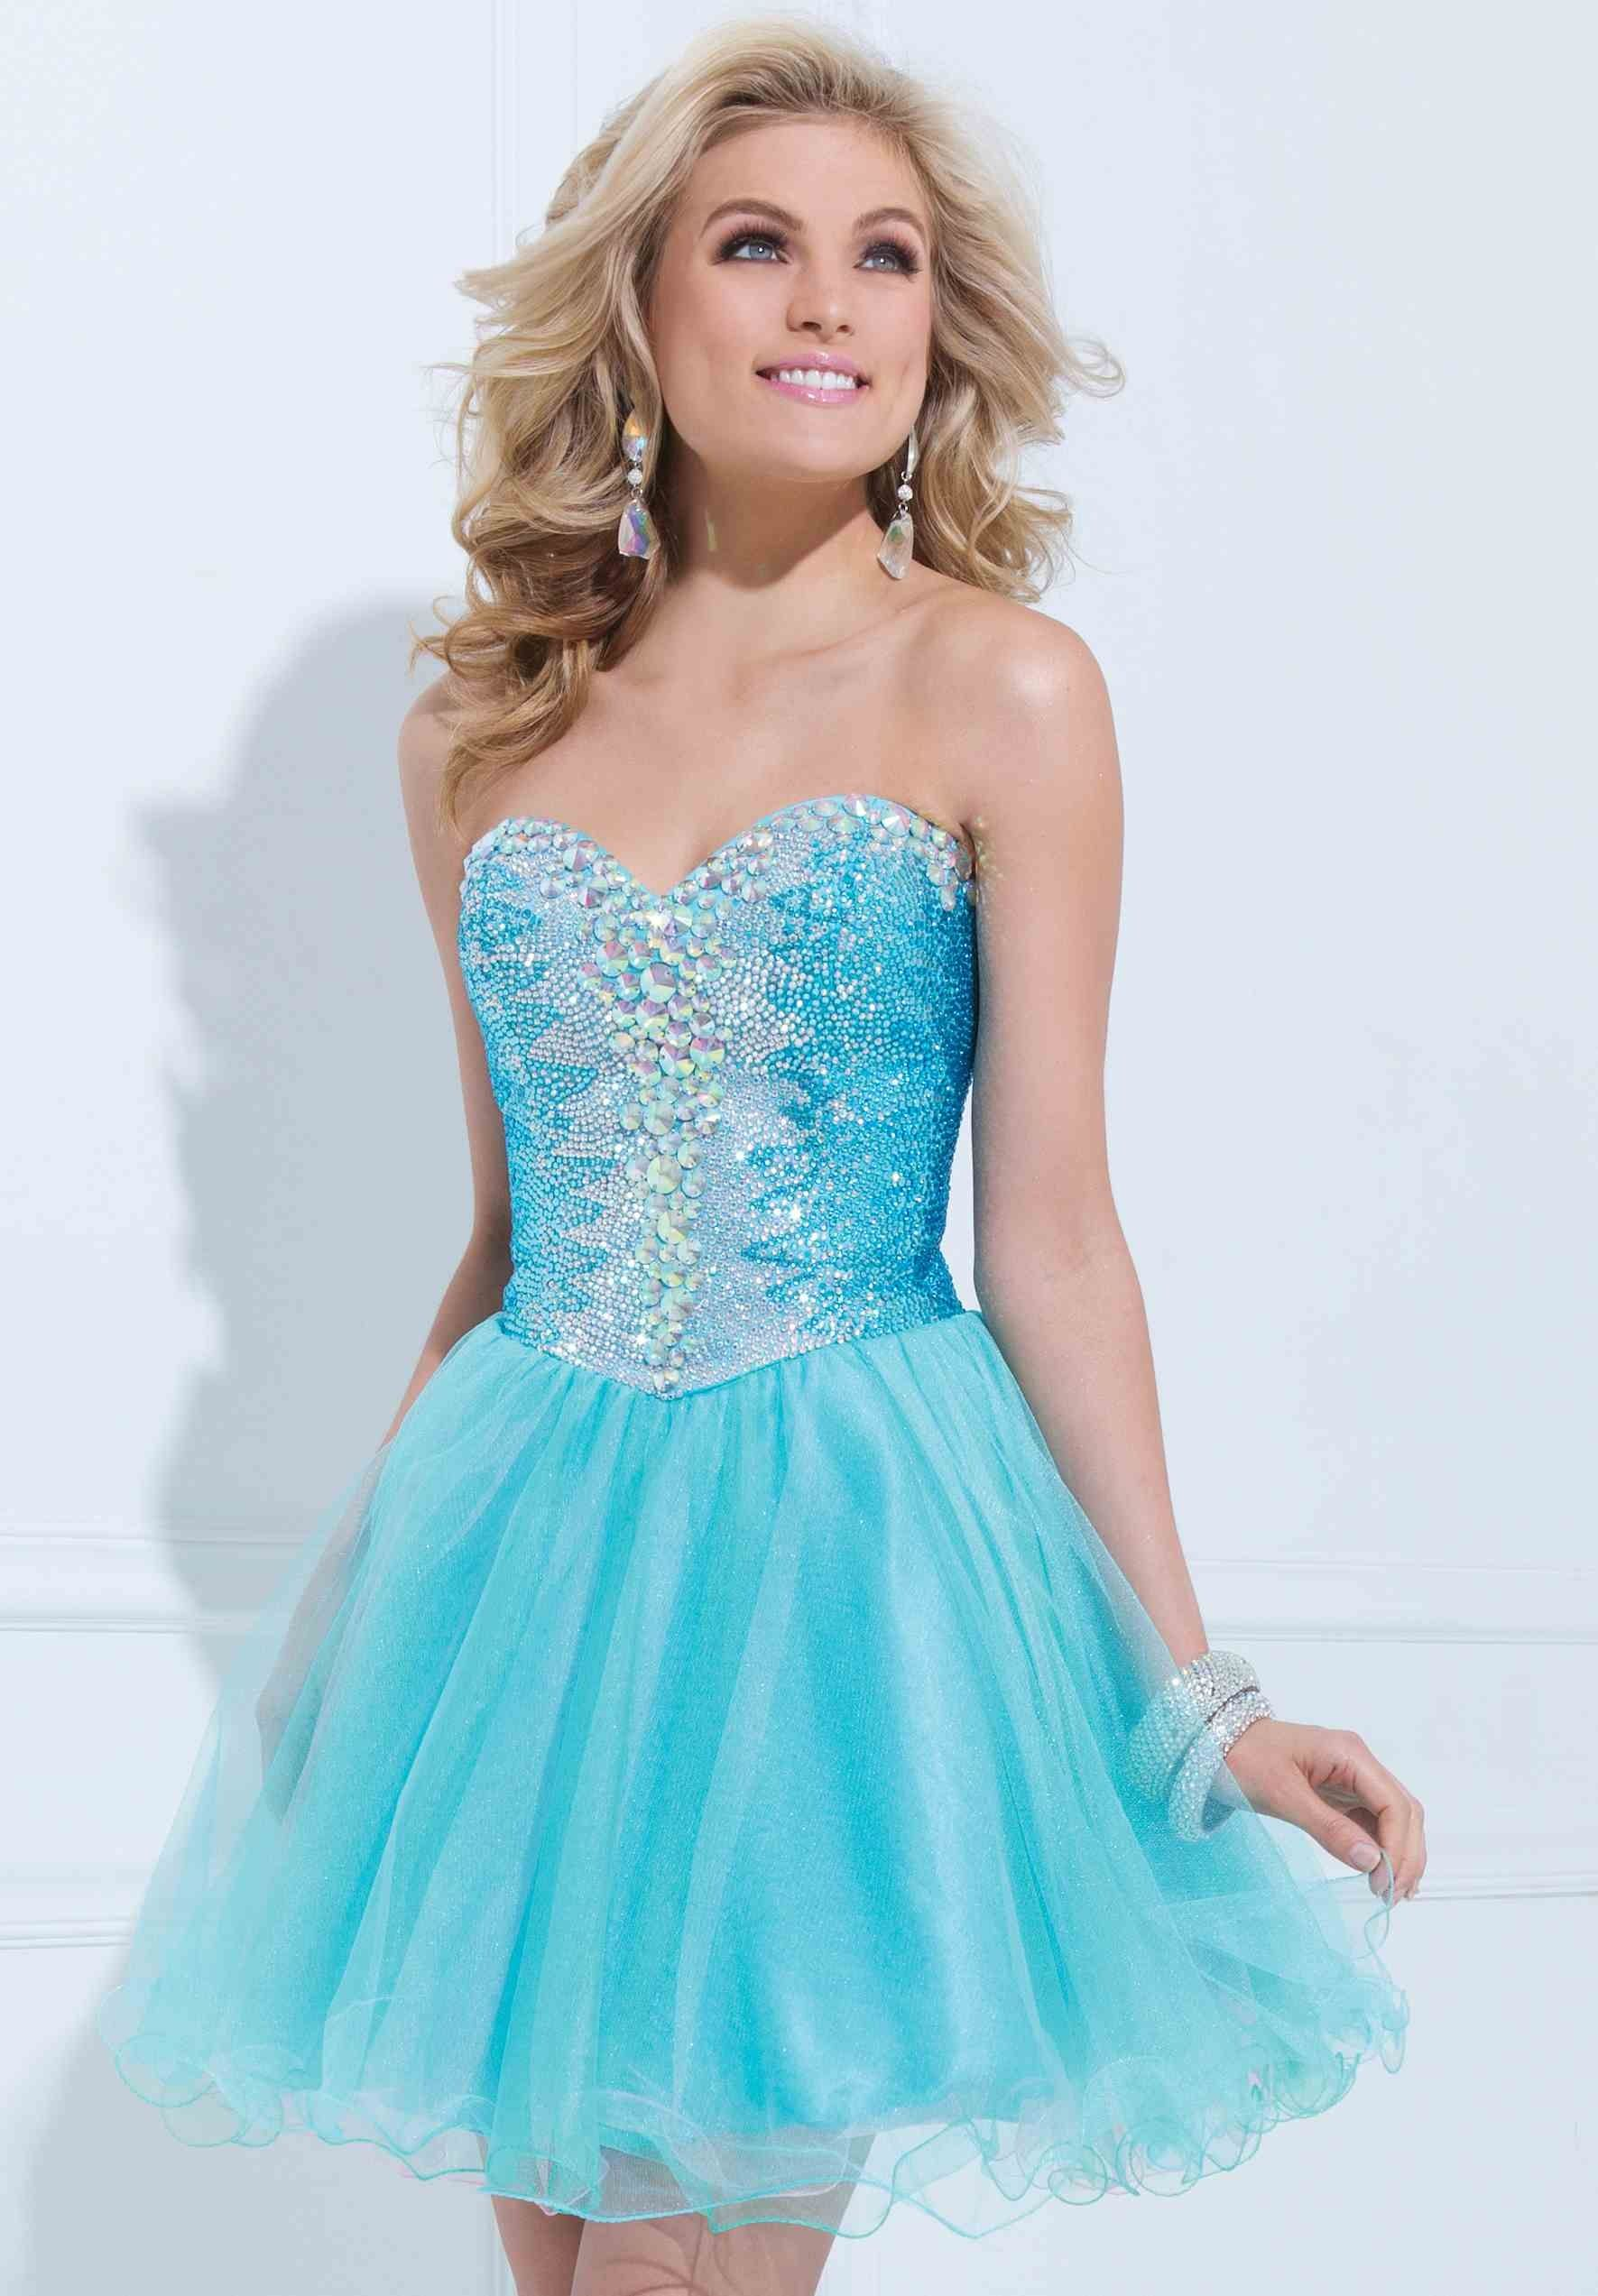 Ball Gown Short Sleeveless Blue Prom Dresses 2014 CA12270 | Blush ...